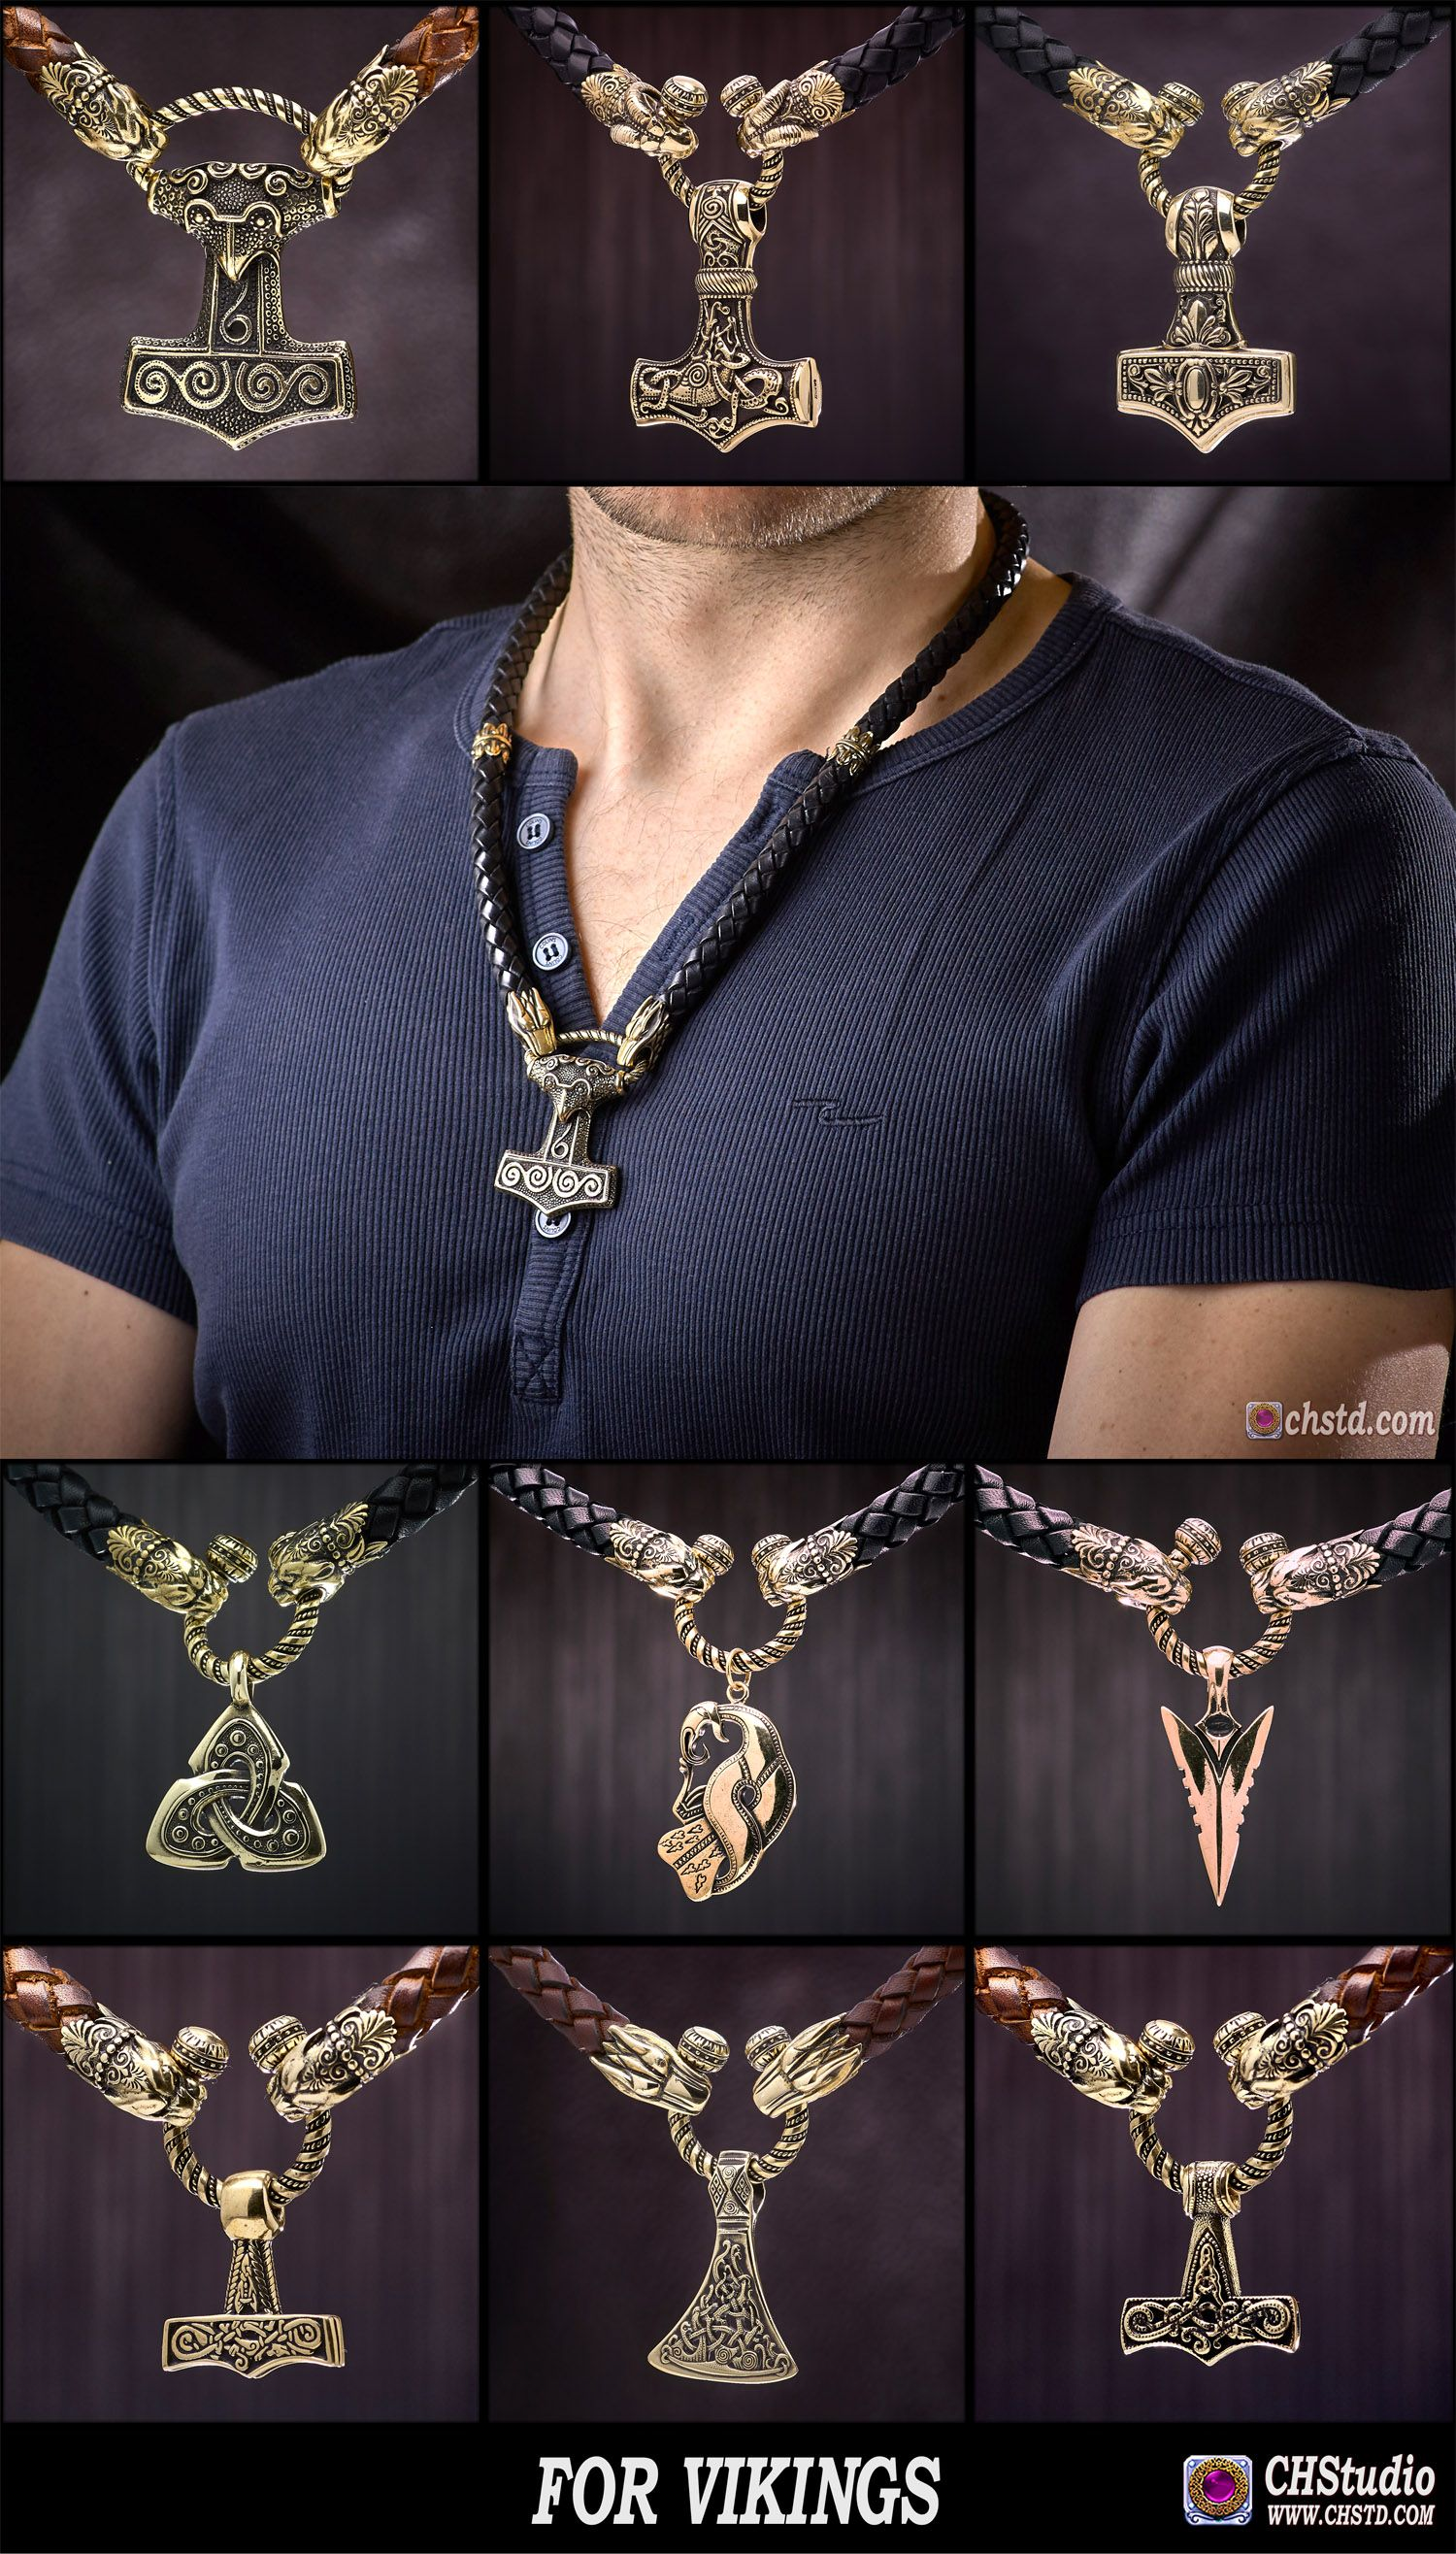 THOR'S HAMMER, MJOLNIR Skane - Leather Necklace With Bronze Heads - HANDMADE --------------- • Original Handcrafted Bronze Jewelry. • Purchase Now in Three-Clicks. • Safe Transactions With PayPal. • Worldwide Shipping With Tracking Number. • Perfect Quality - Beautiful Cut! • US,CA delivery 2-7 days • EU,AU,NZ delivery 5-15 days • Worldwide delivery 15-30 days #mjolnir #axe #norse #viking #triquetra #pendant #bronze #leather #handcrafted #craft #handmade